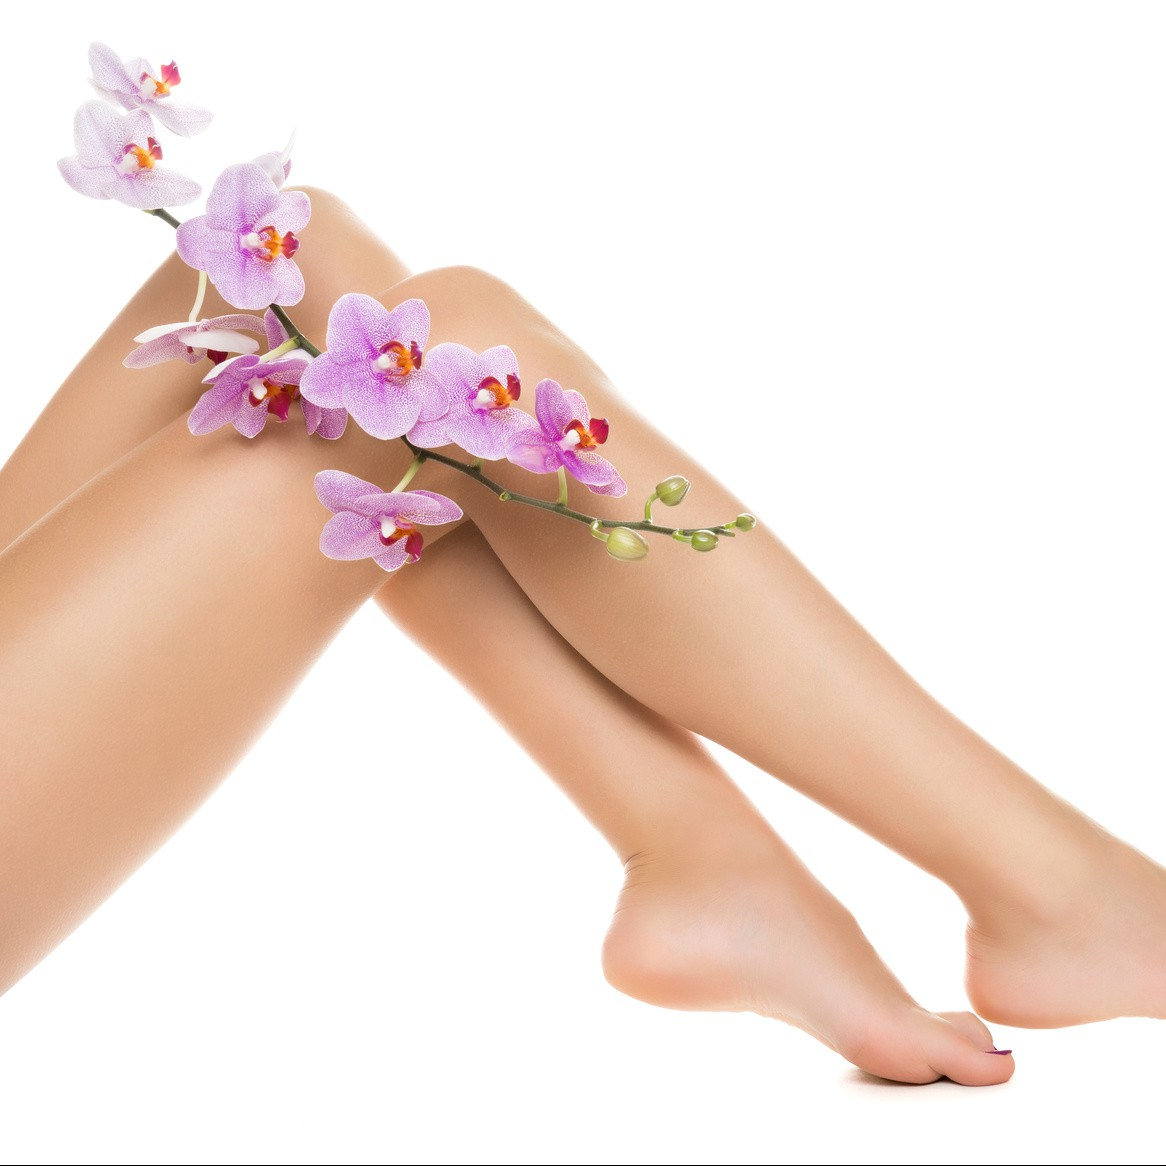 Benefits of laser hair removal - it prevents ingrowth/Glenmark_8_7BenefitsofLaserHairRemoval/You%20save%20money%20in%20the%20long%20run.jpg